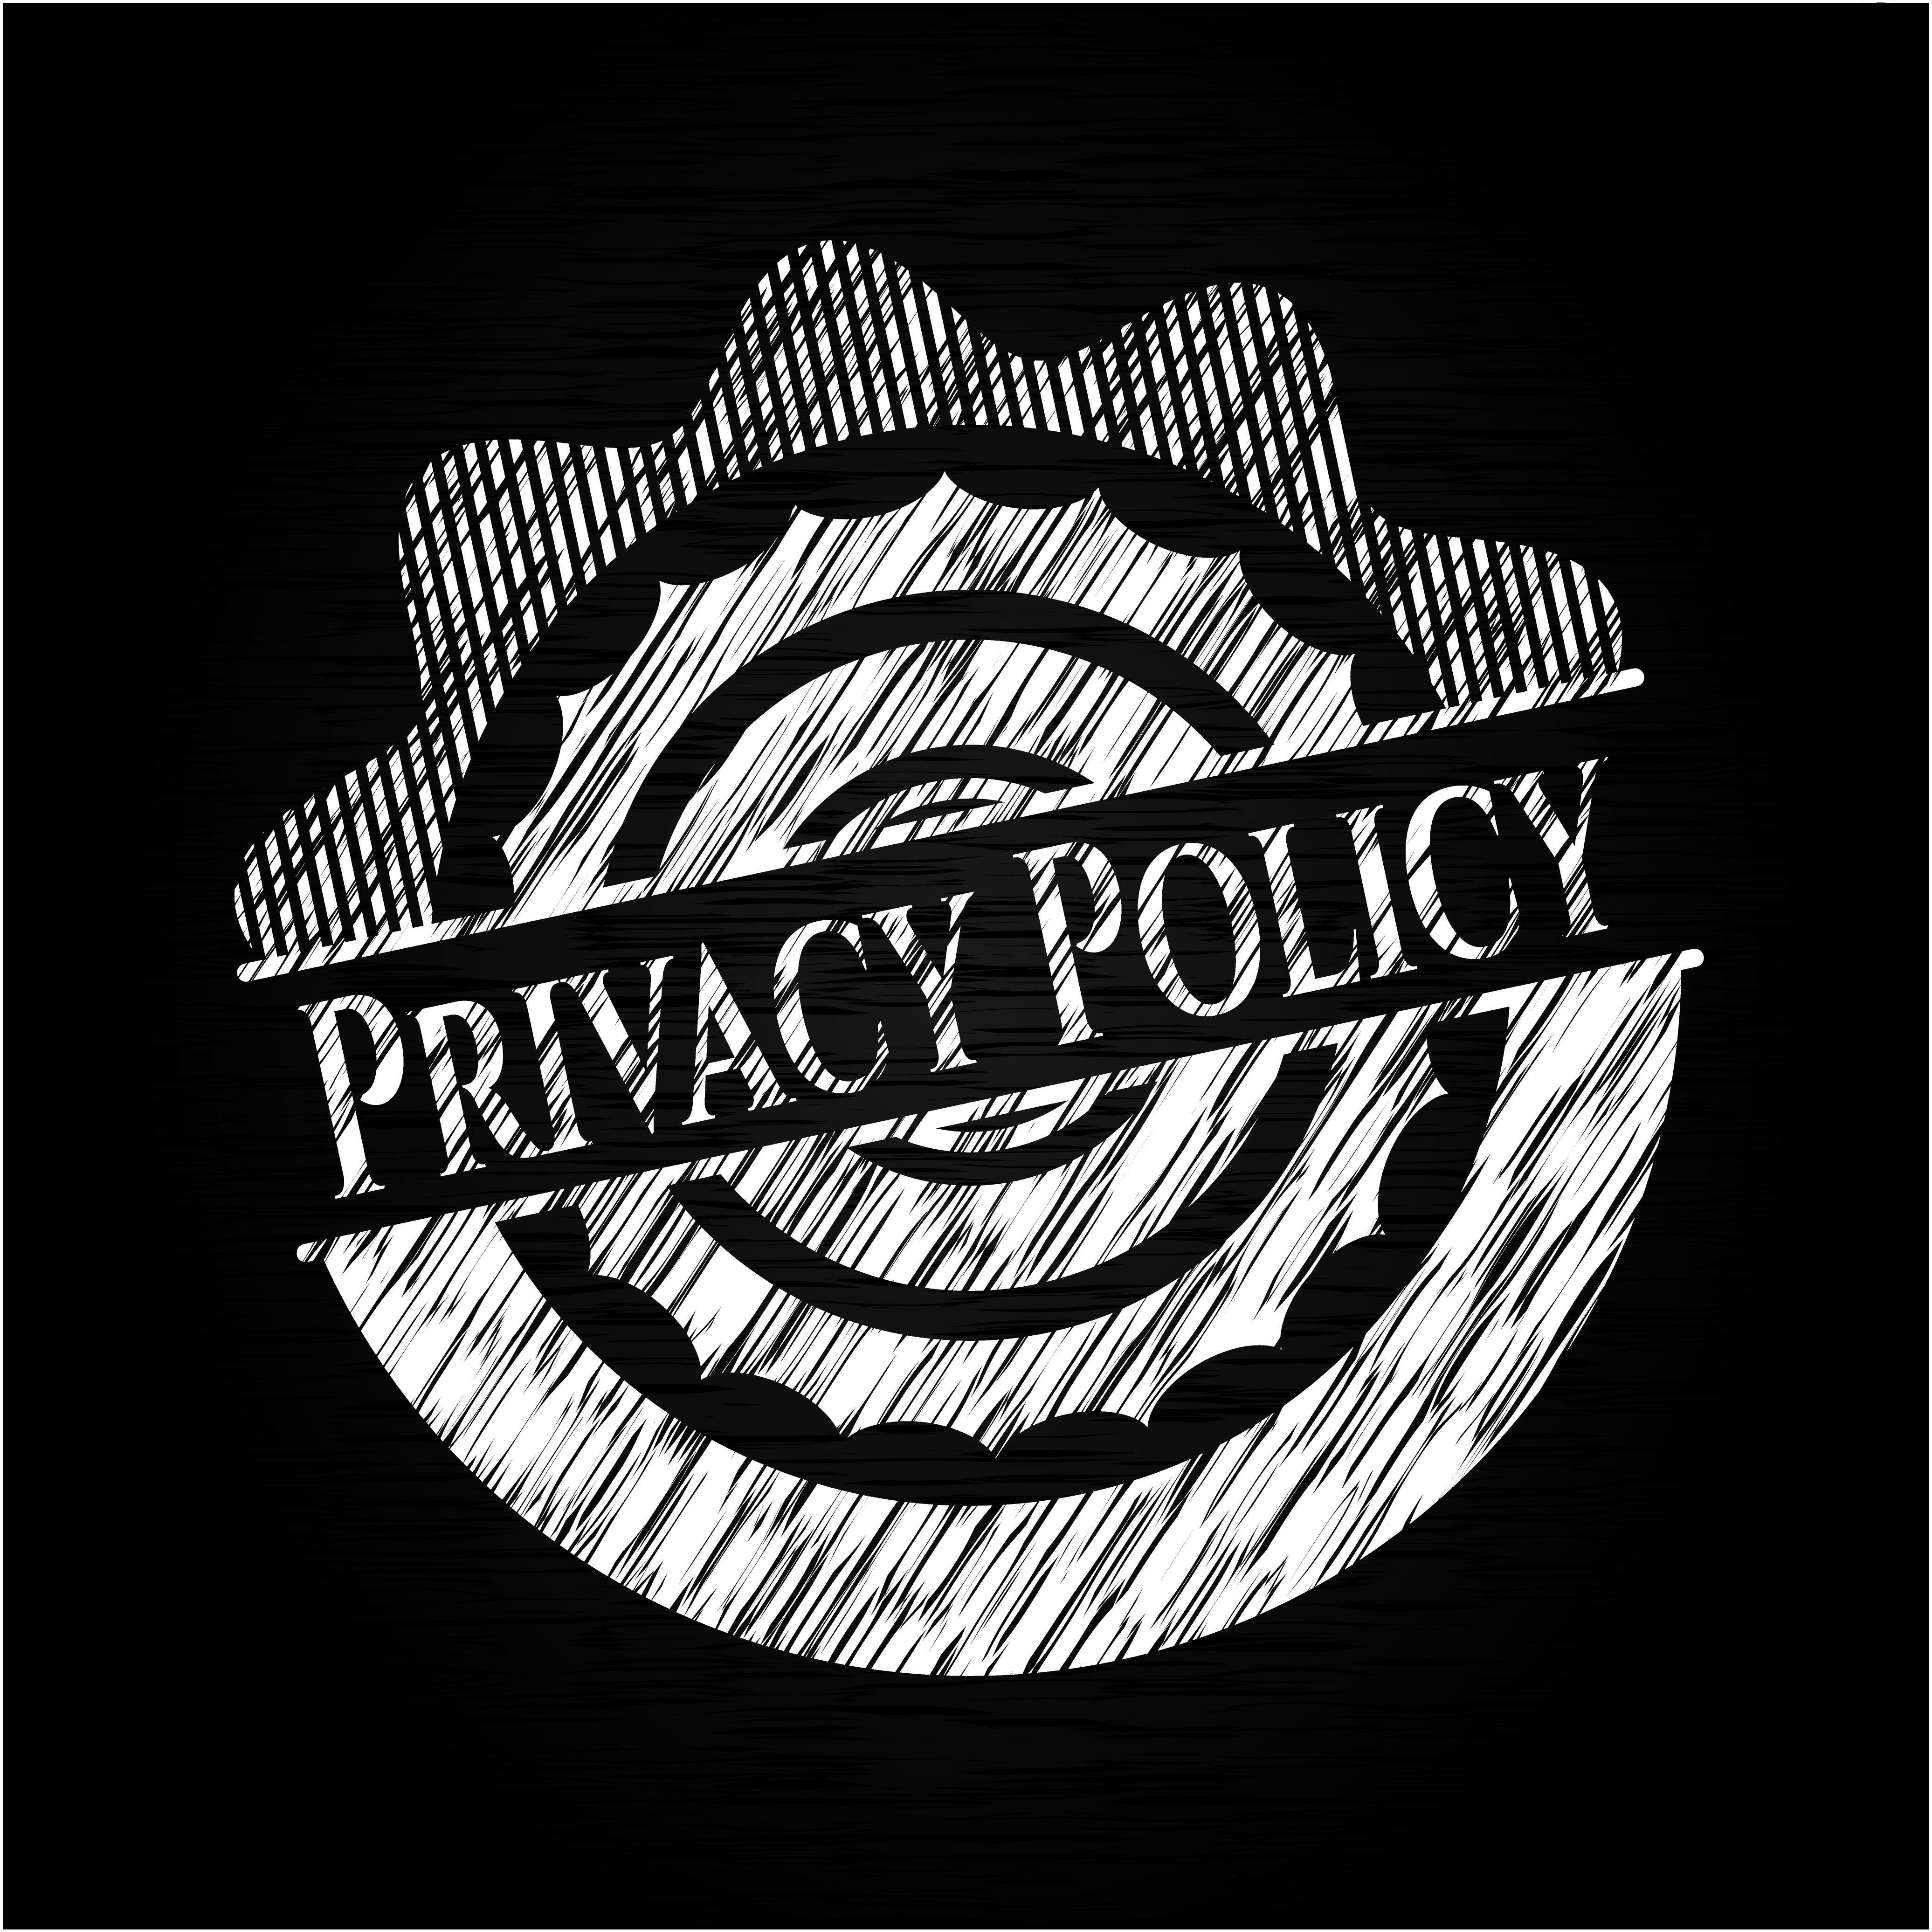 privacy_policy welivesecurity privacy logo privacy_policy #1